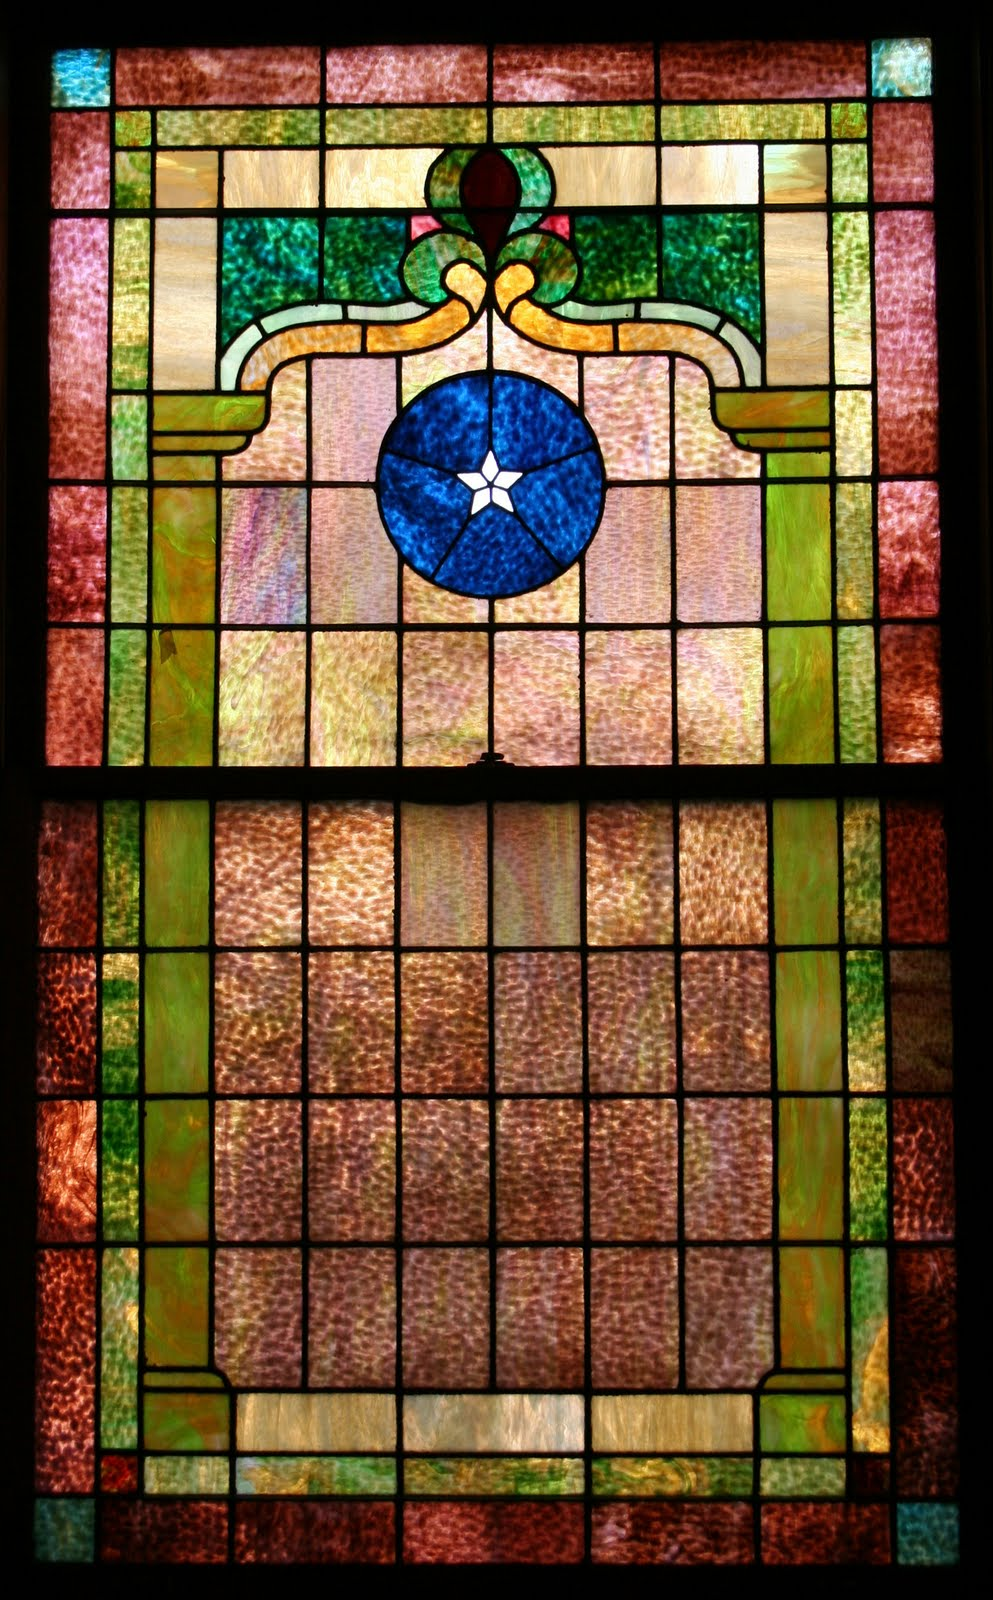 While Simple In Design The Stained Glass Windows Contain Some Of Most Vivid And Striking Colors Ive Seen These Original To Church